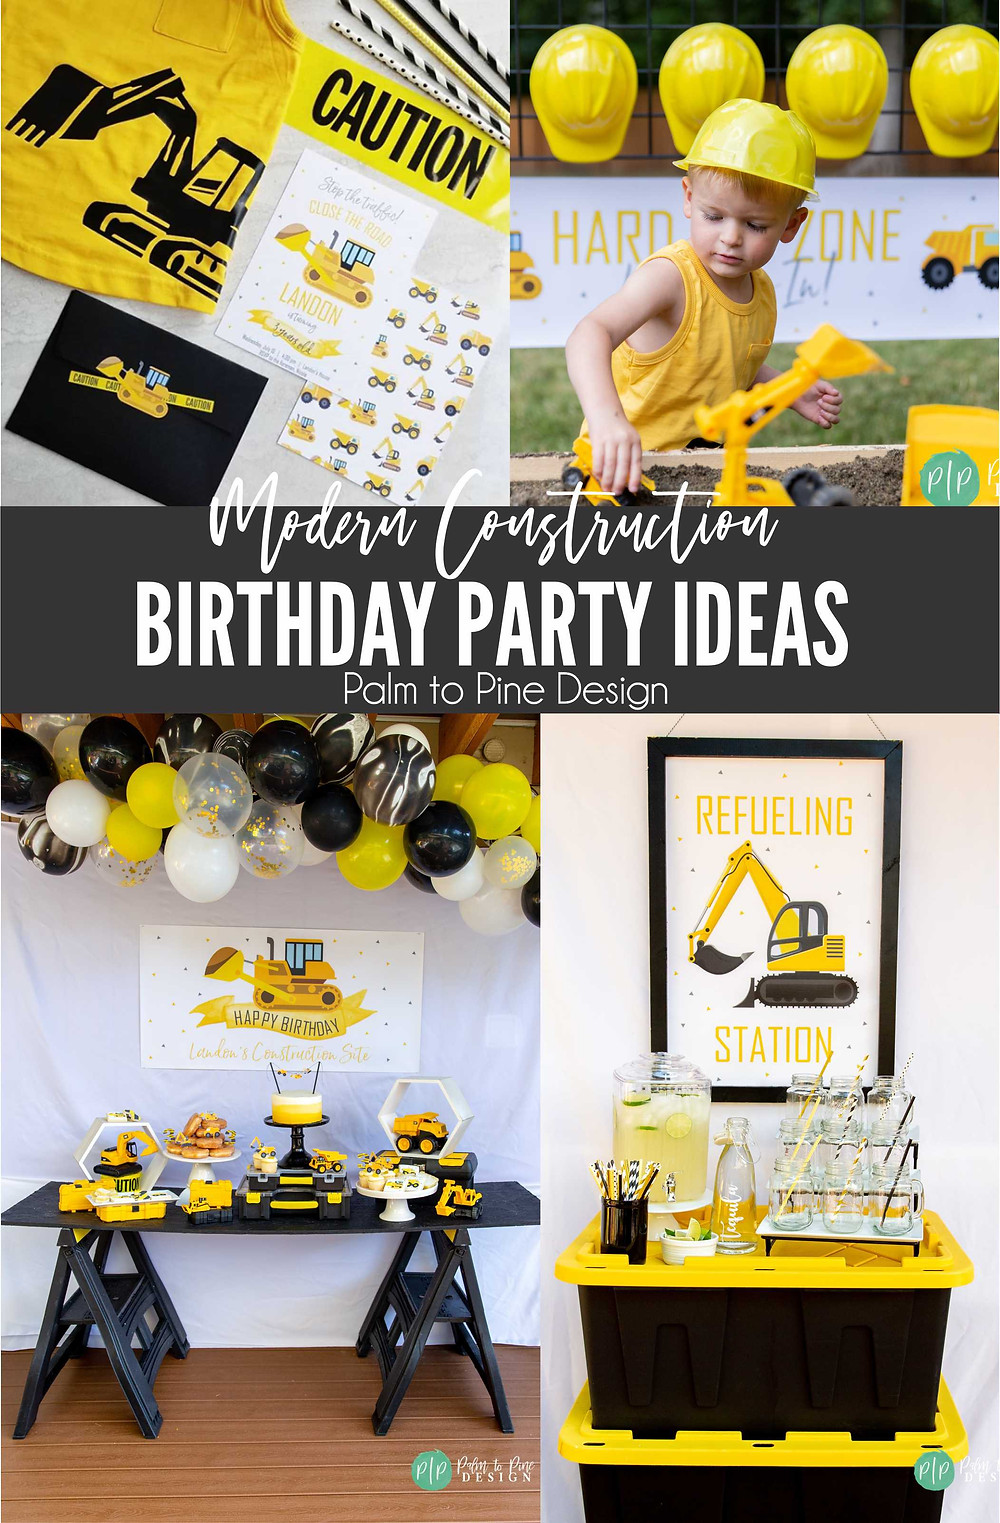 construction birthday ideas, construction birthday decorations